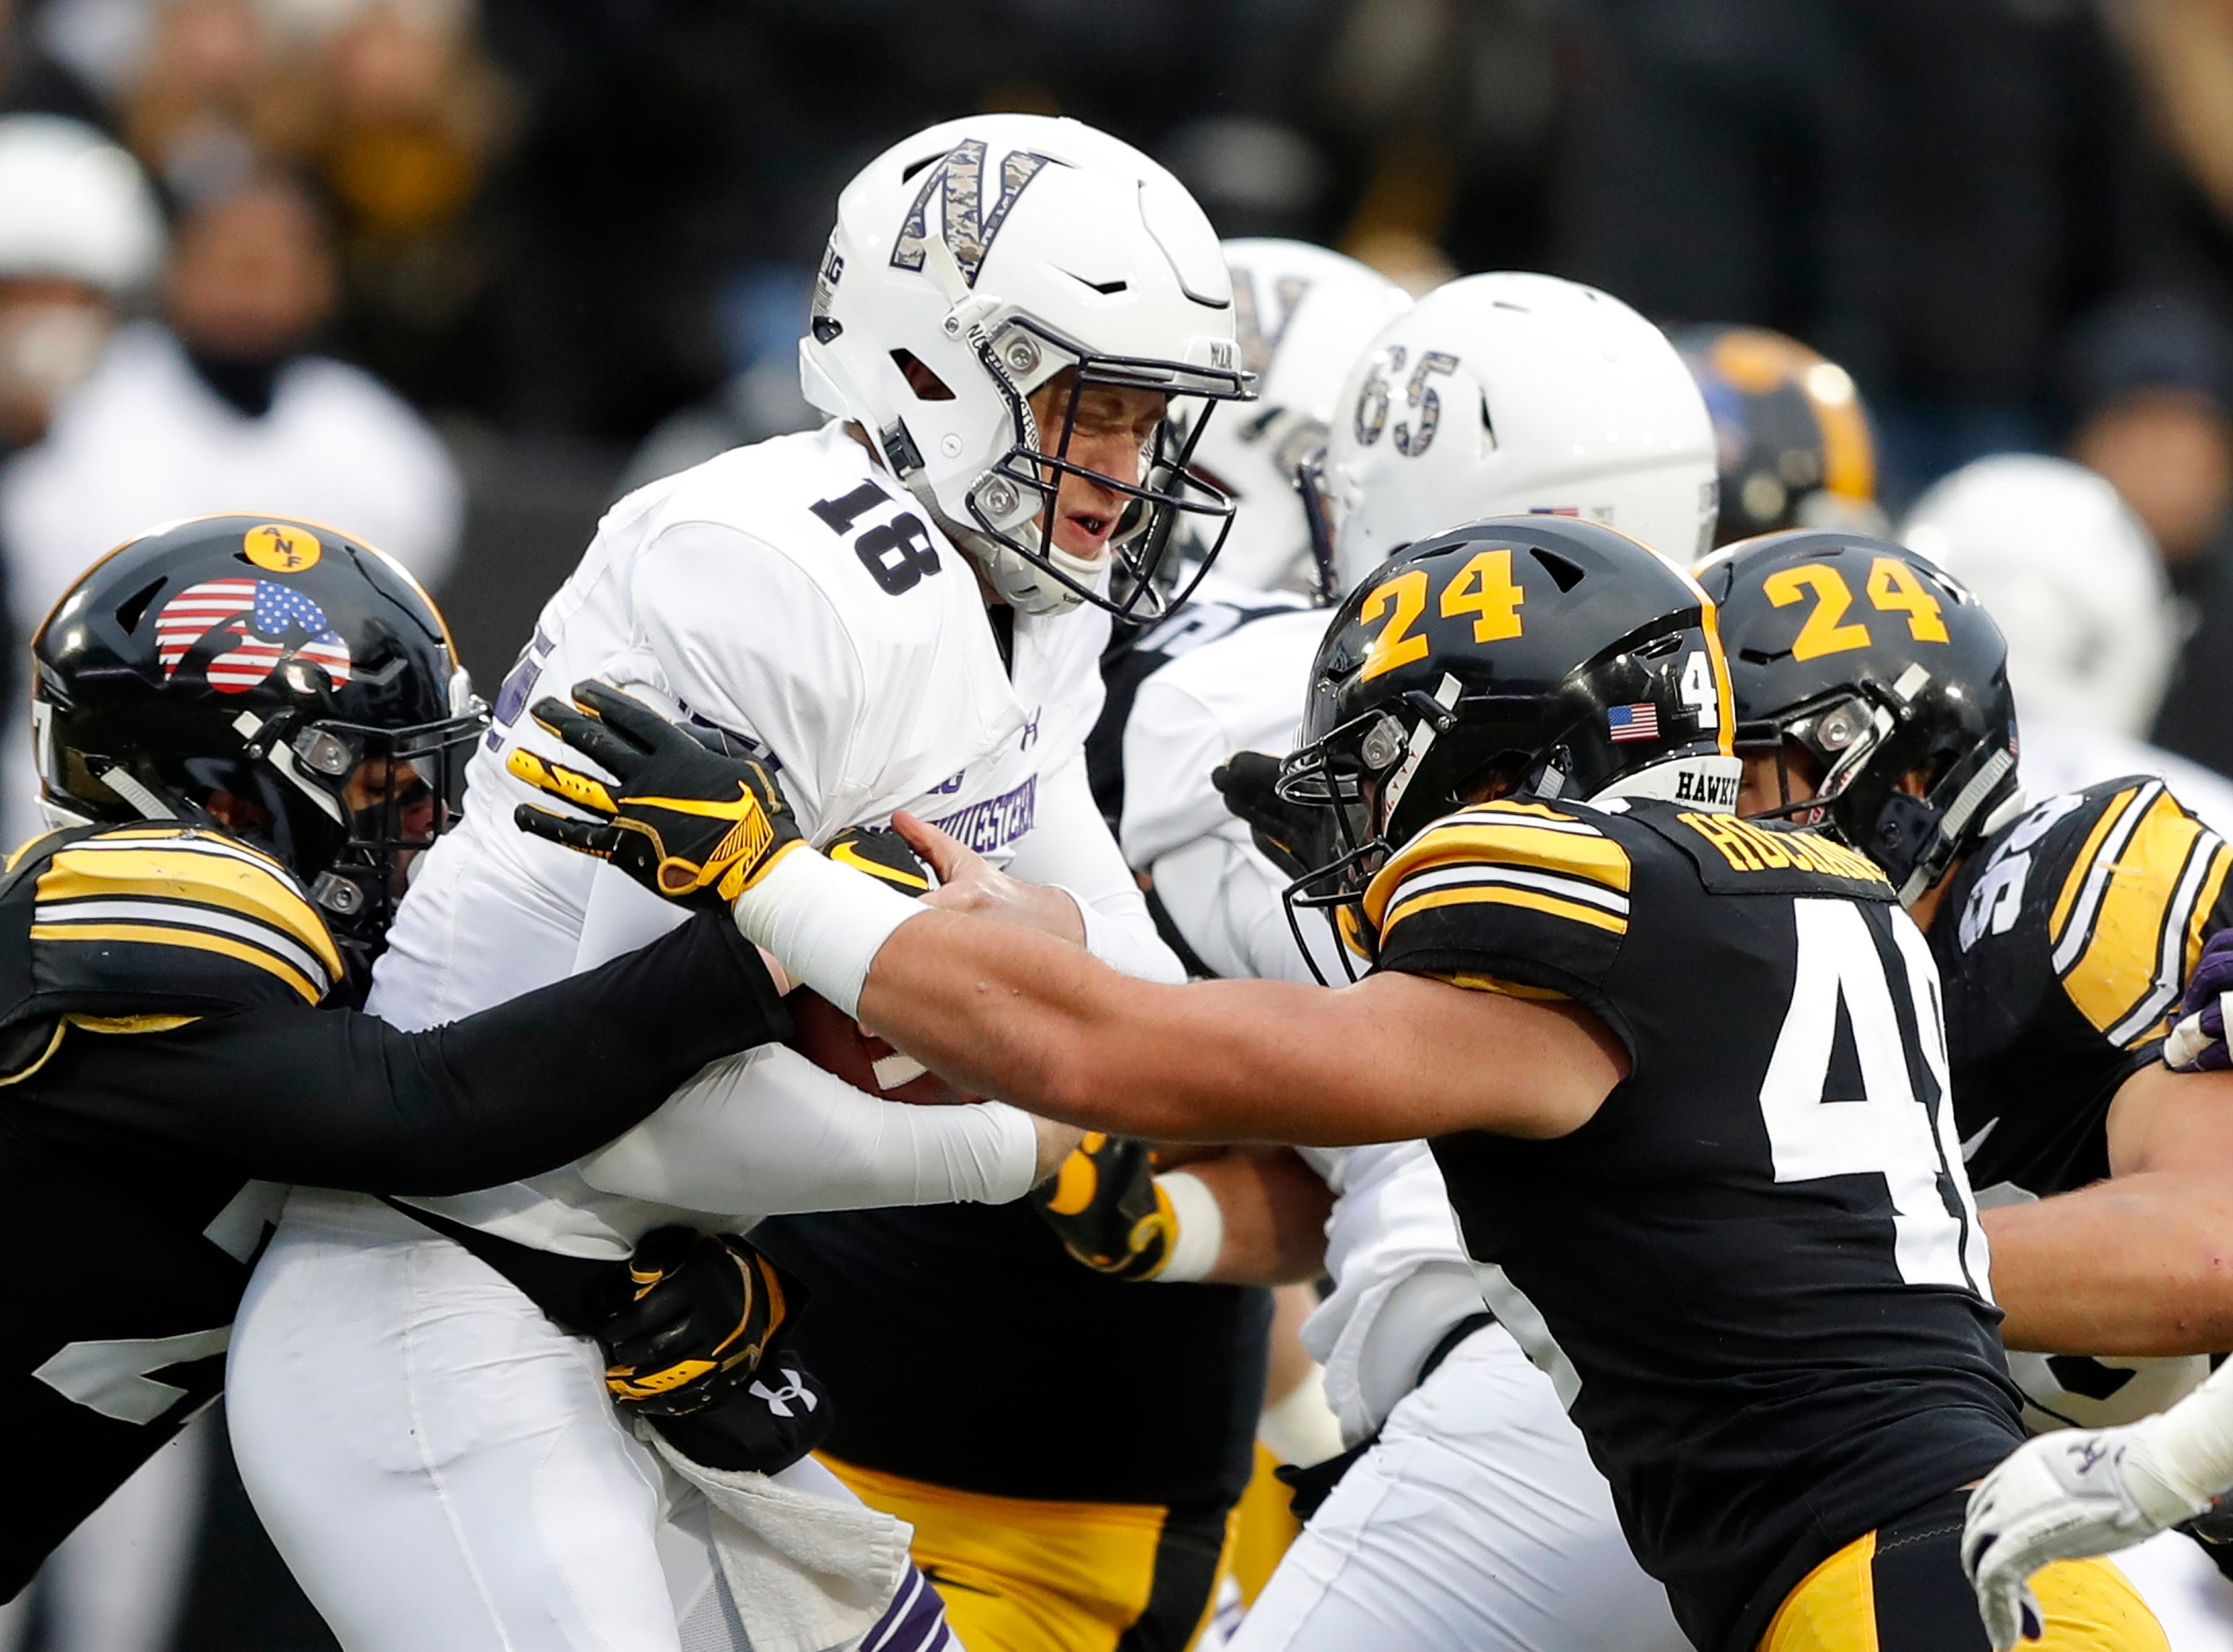 Northwestern quarterback Clayton Thorson (18) is sacked by Iowa's Amani Hooker, left, and Jack Hockaday, right, during the first half of an NCAA college football game, Saturday, Nov. 10, 2018, in Iowa City, Iowa.